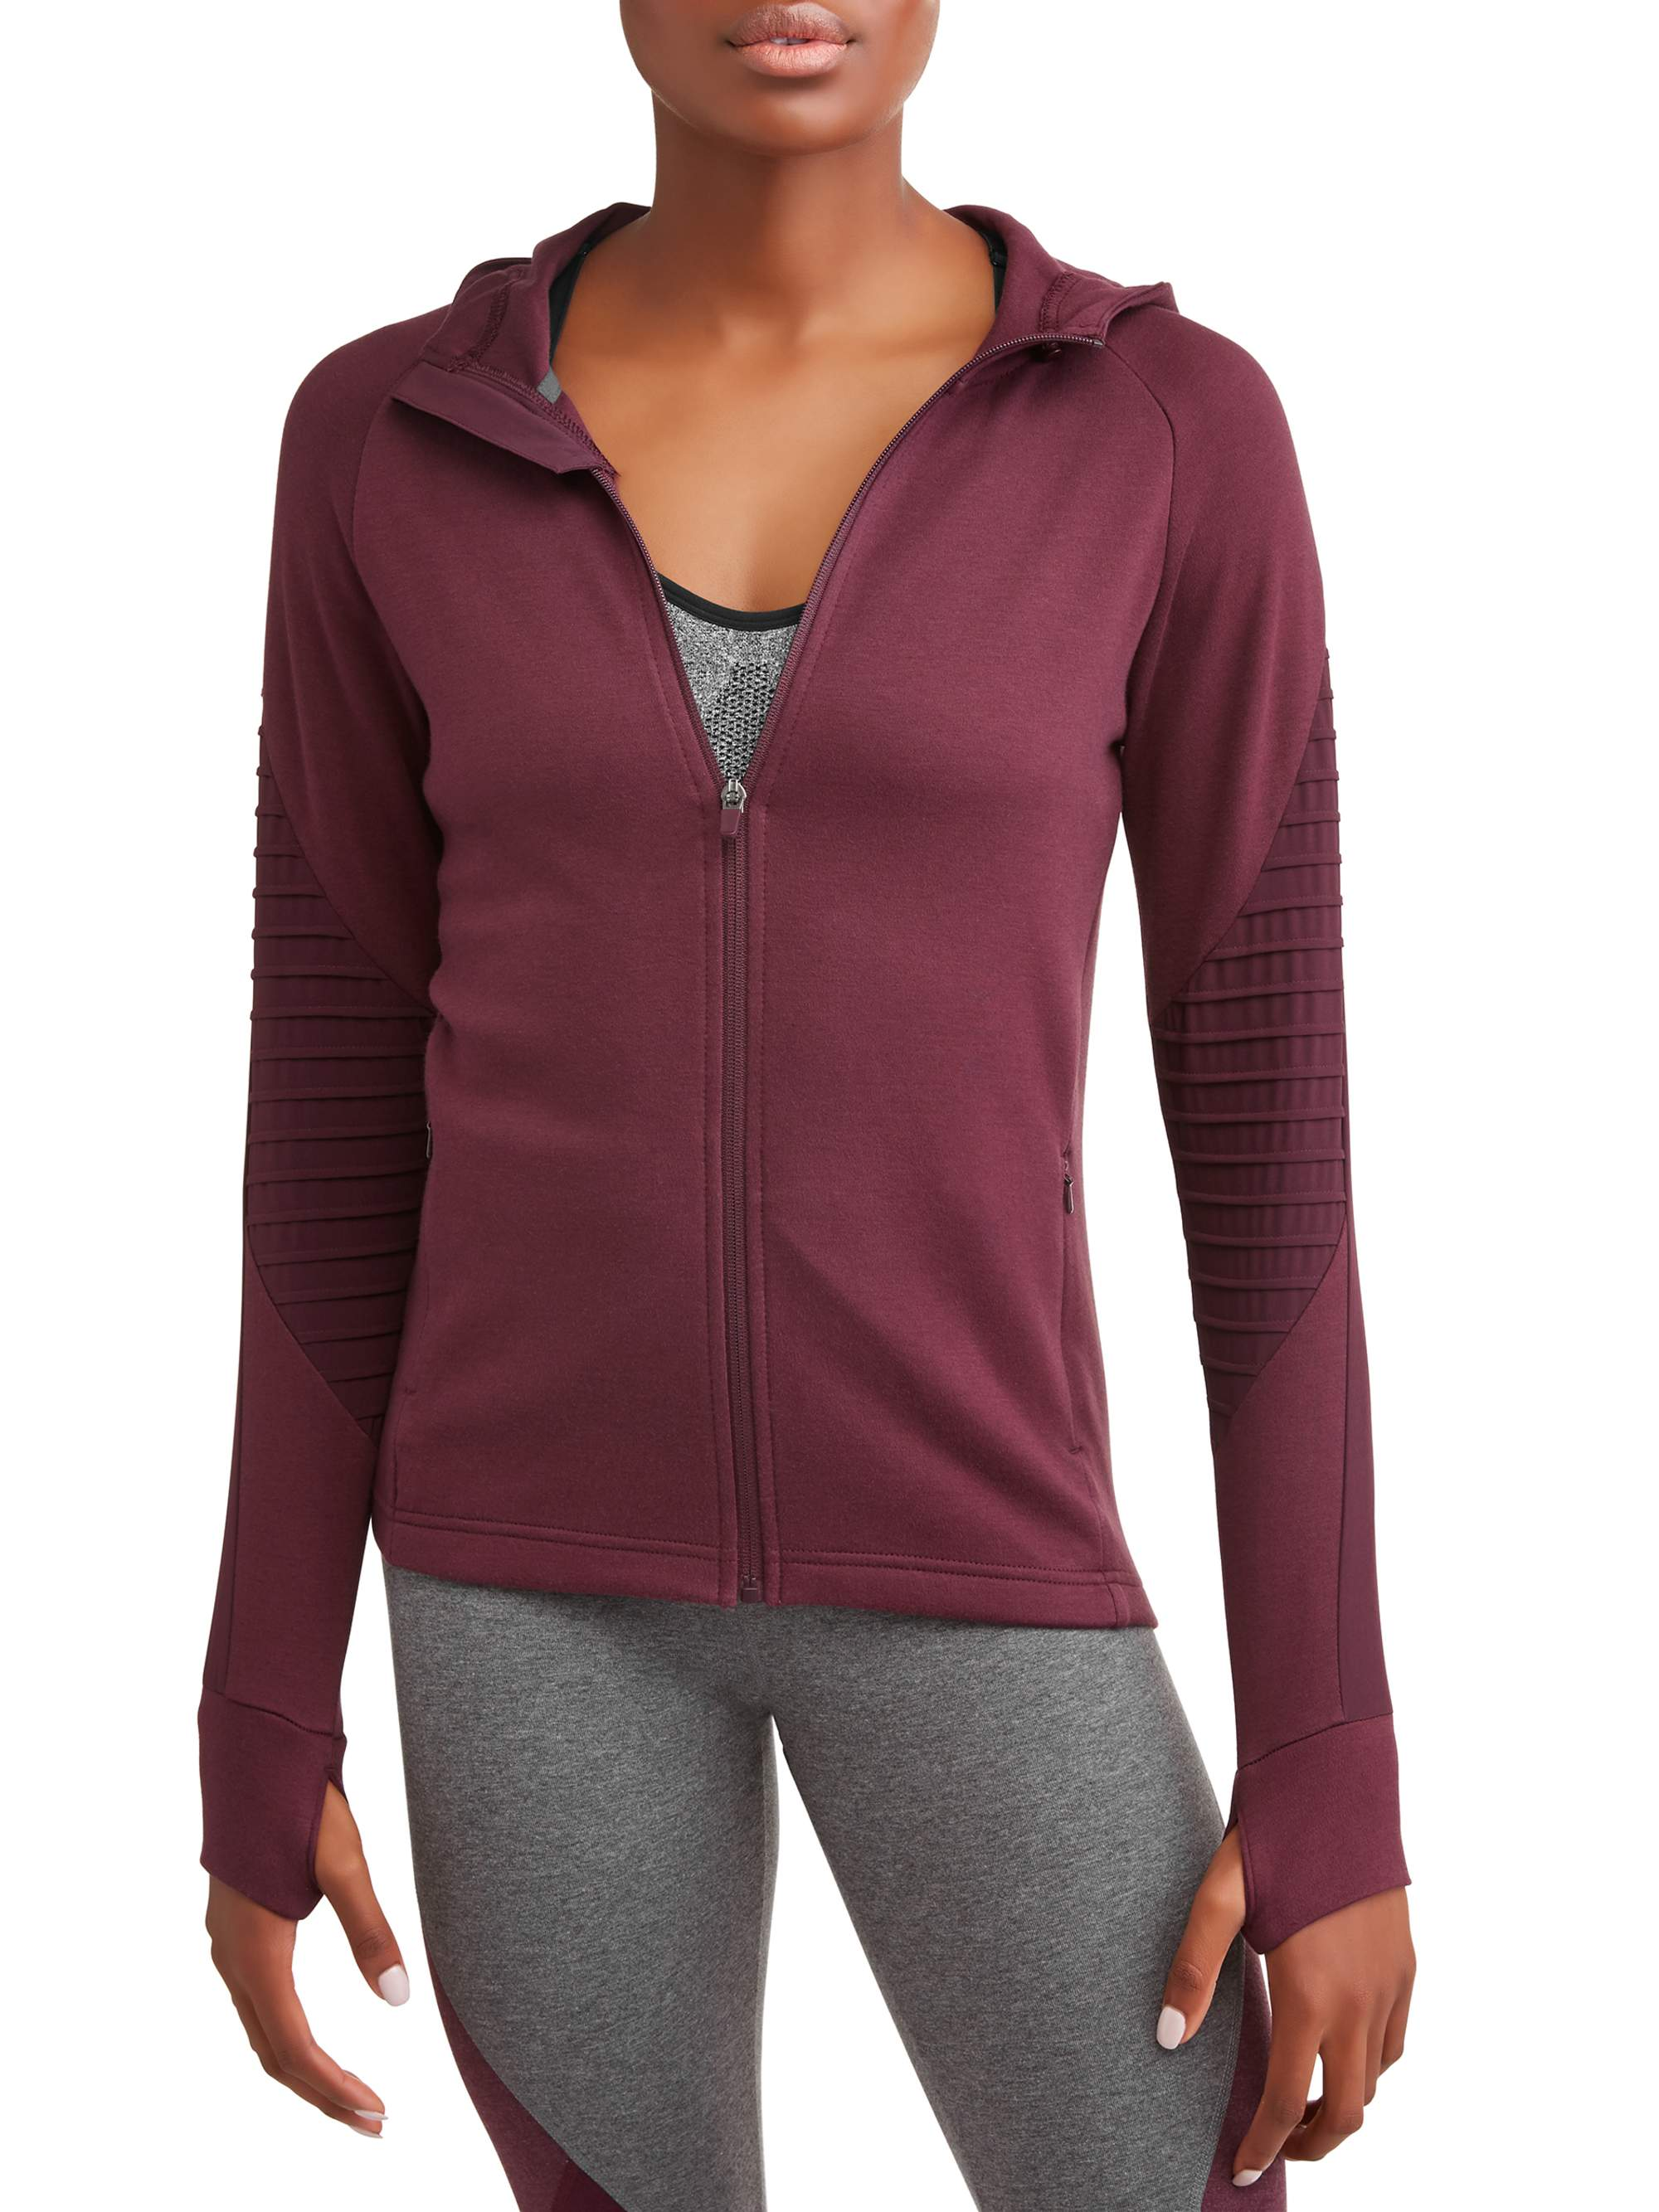 Women's Activewear Avia Flex Tech Jacket